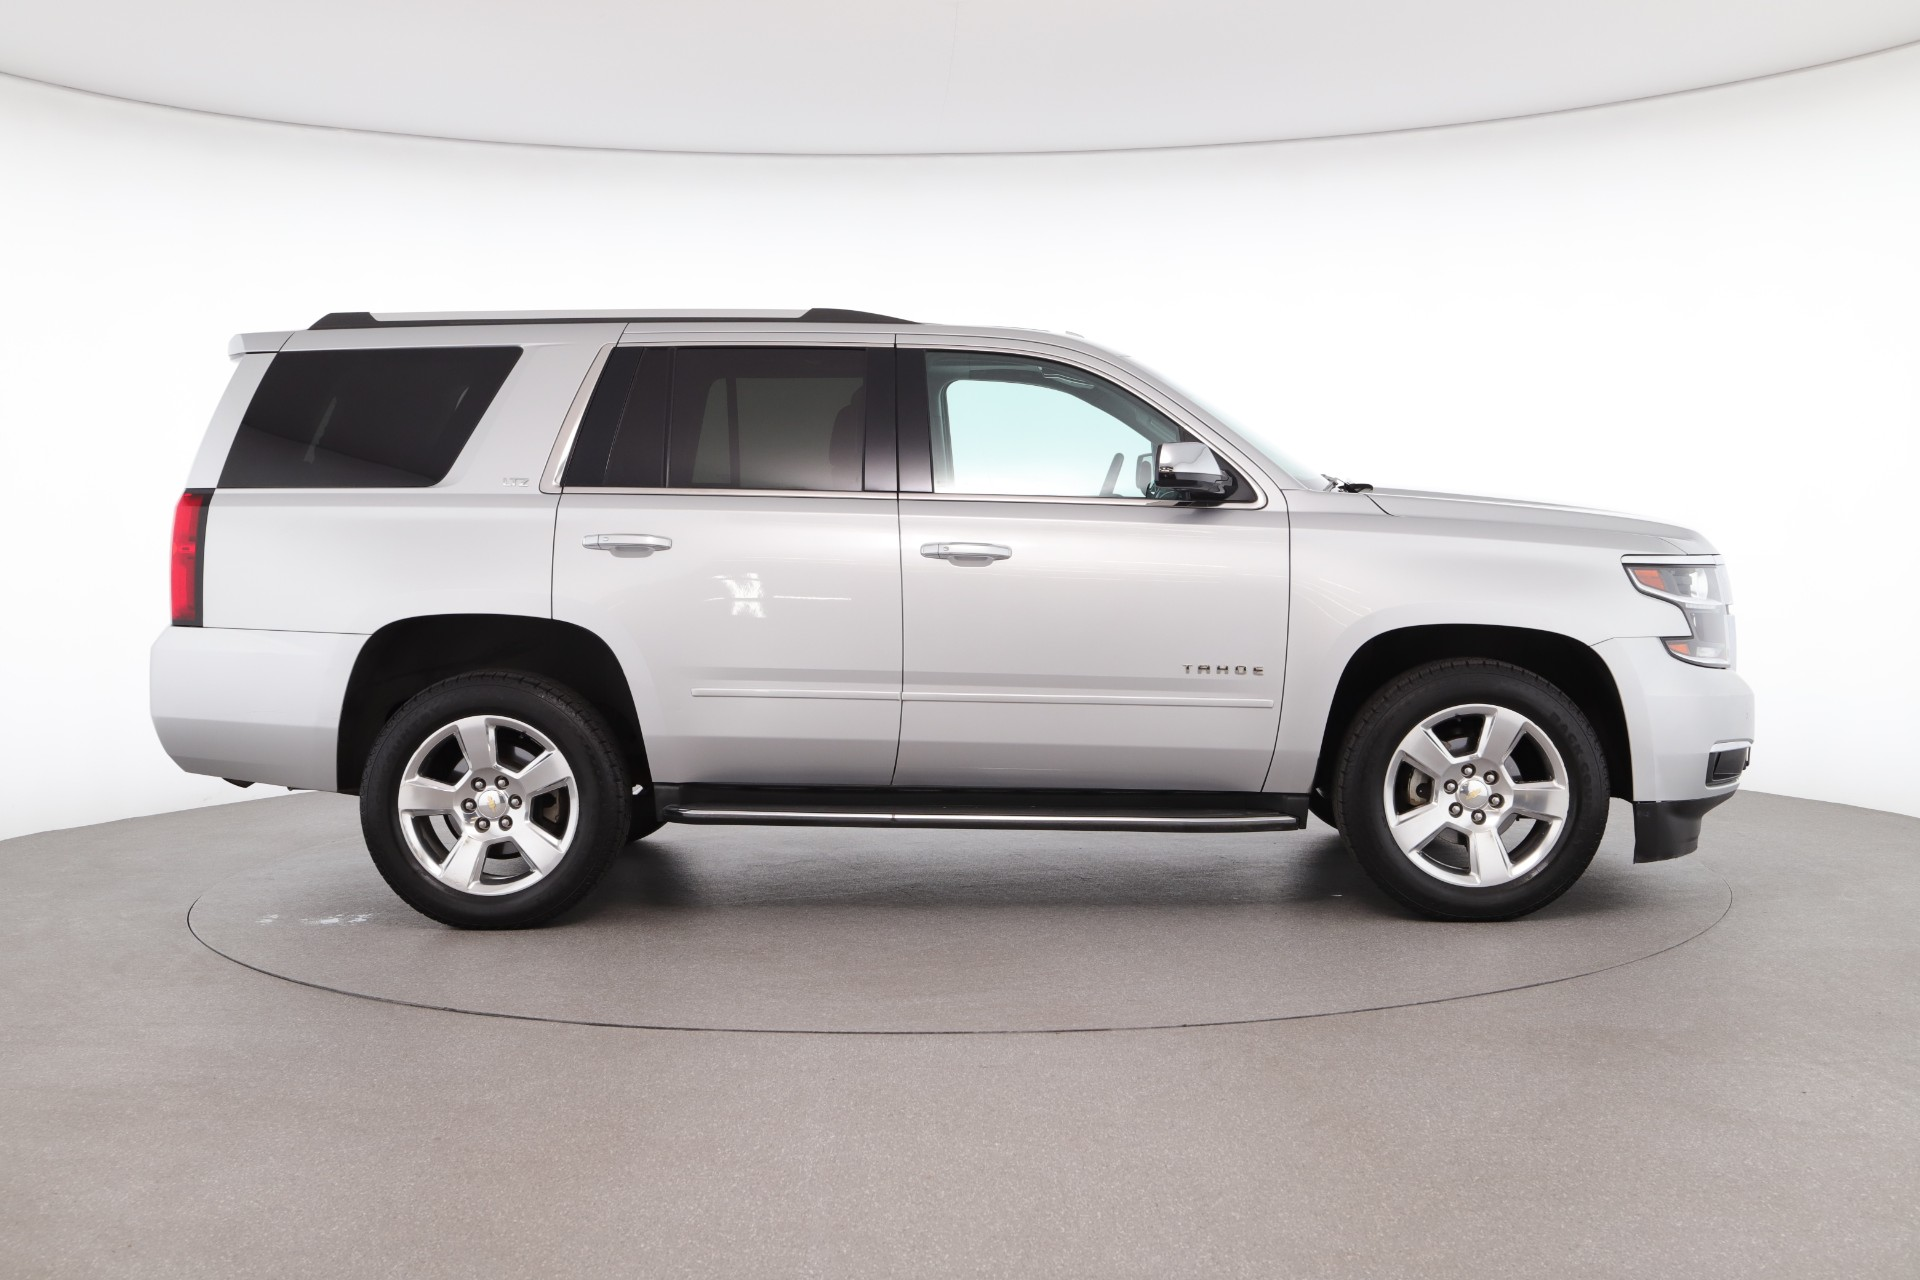 Chevy Tahoe: How Much Is It, How Much Weight Can It Pull and How Many Miles Can It Last?